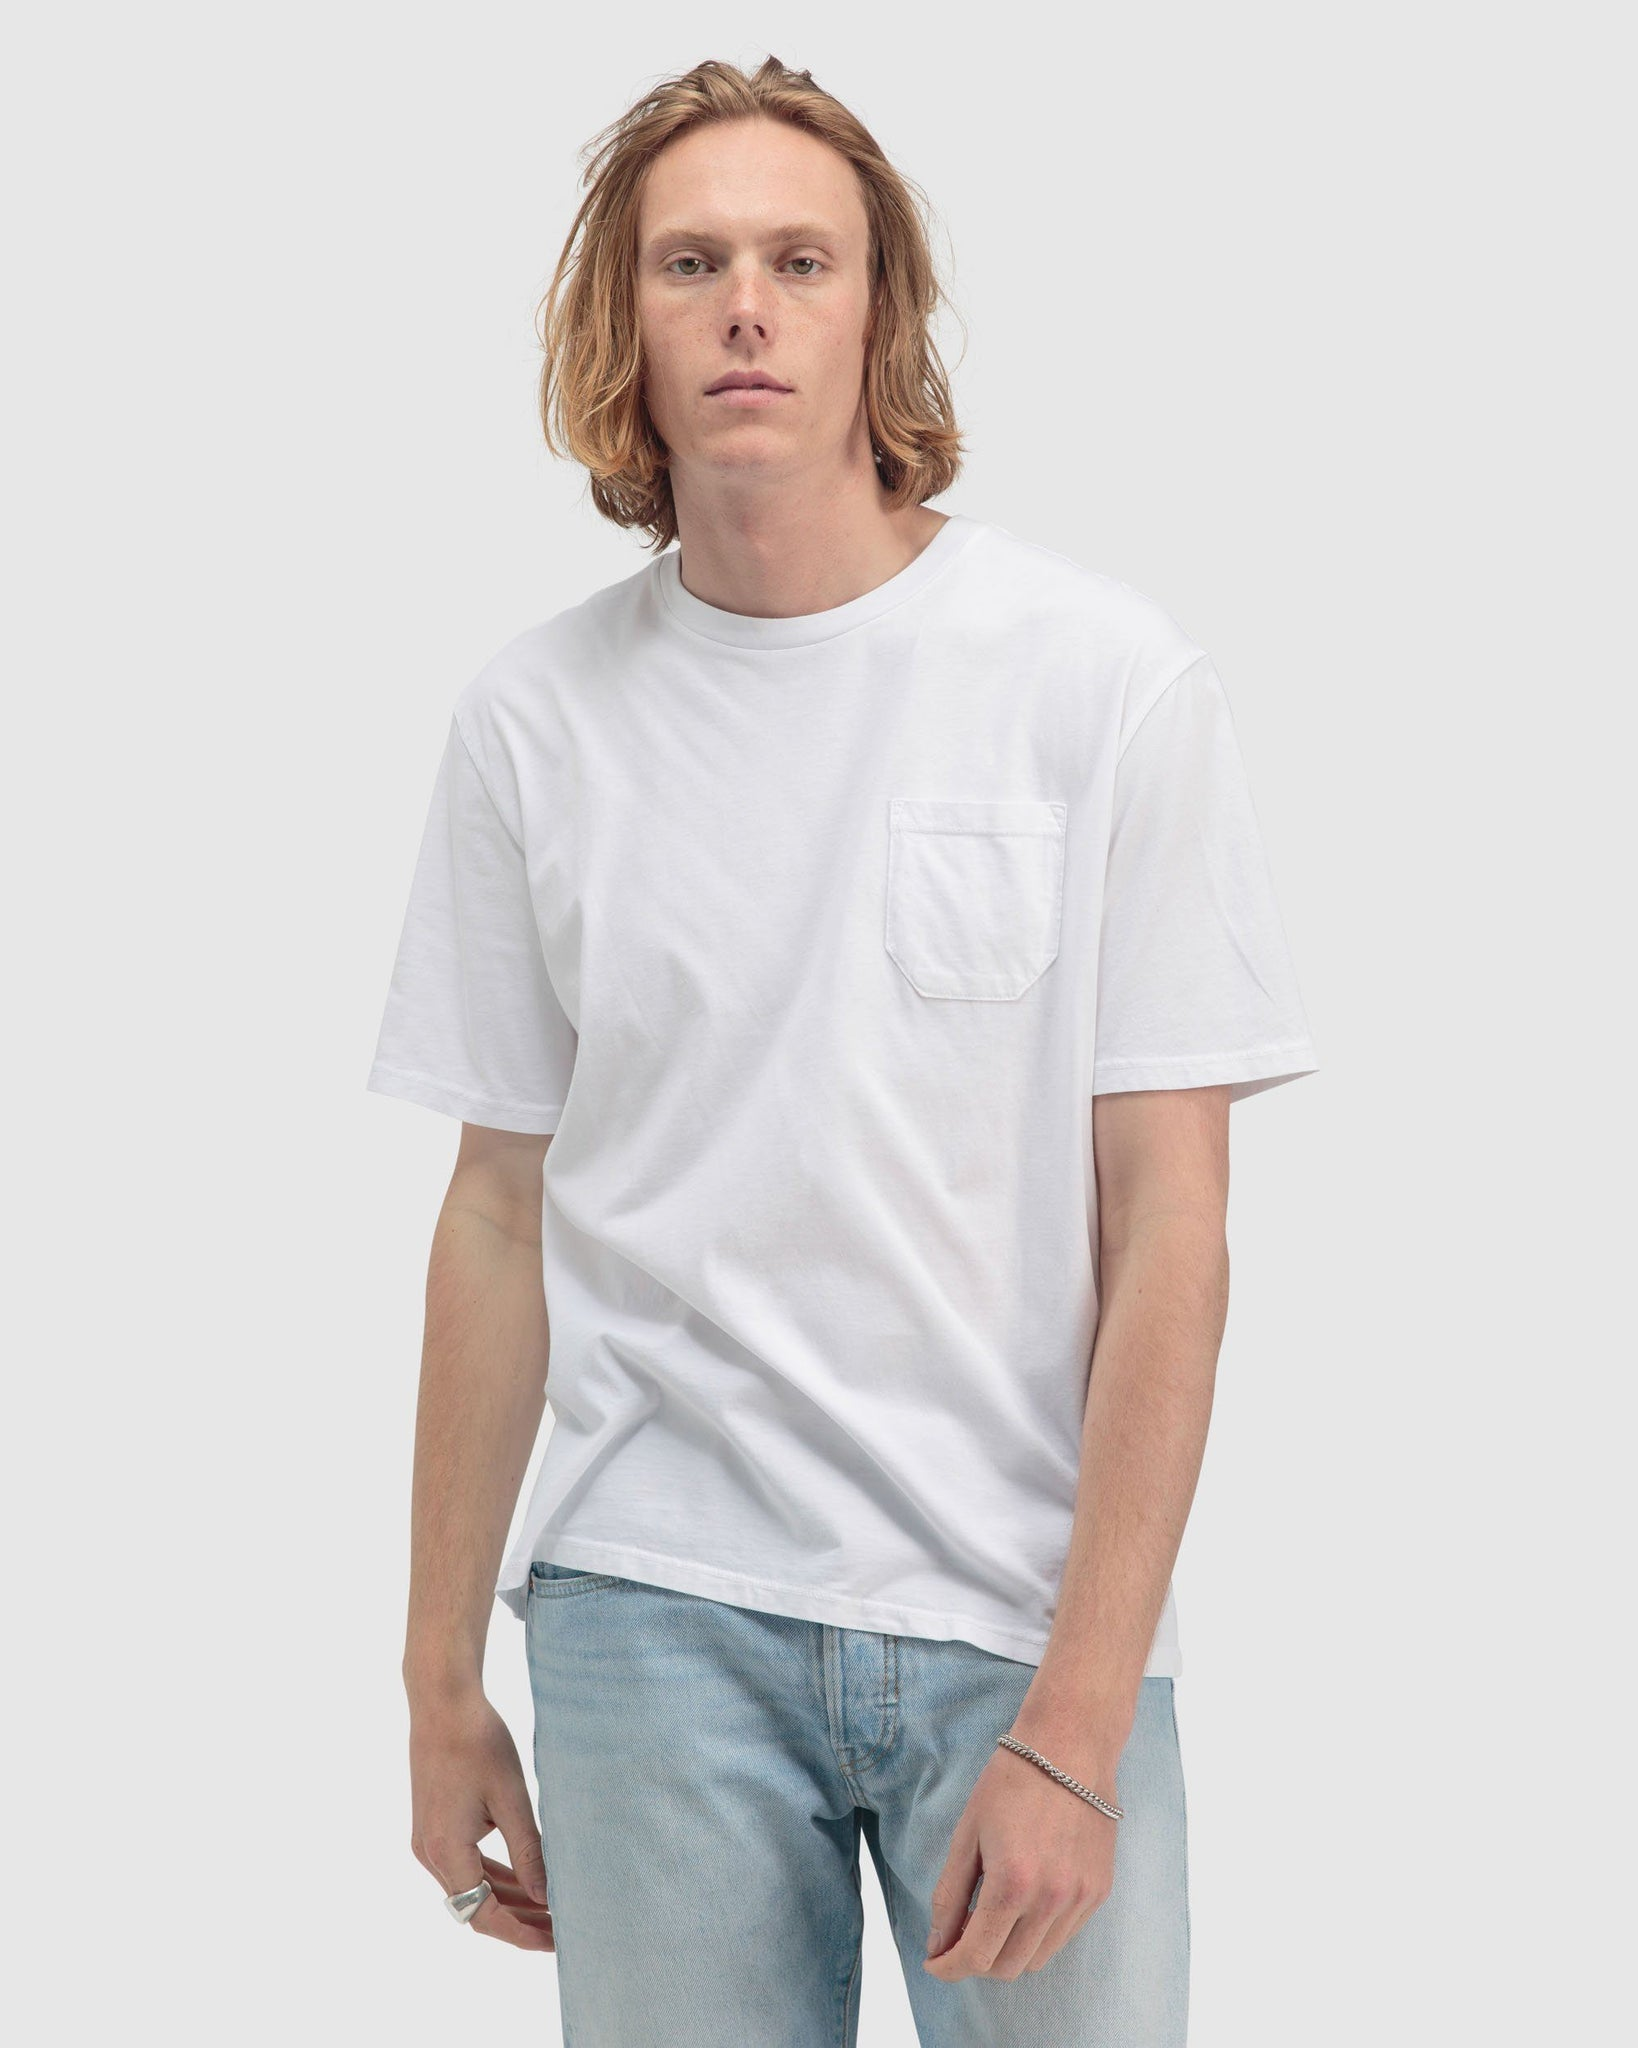 Men's Pocket Crew Tee - White